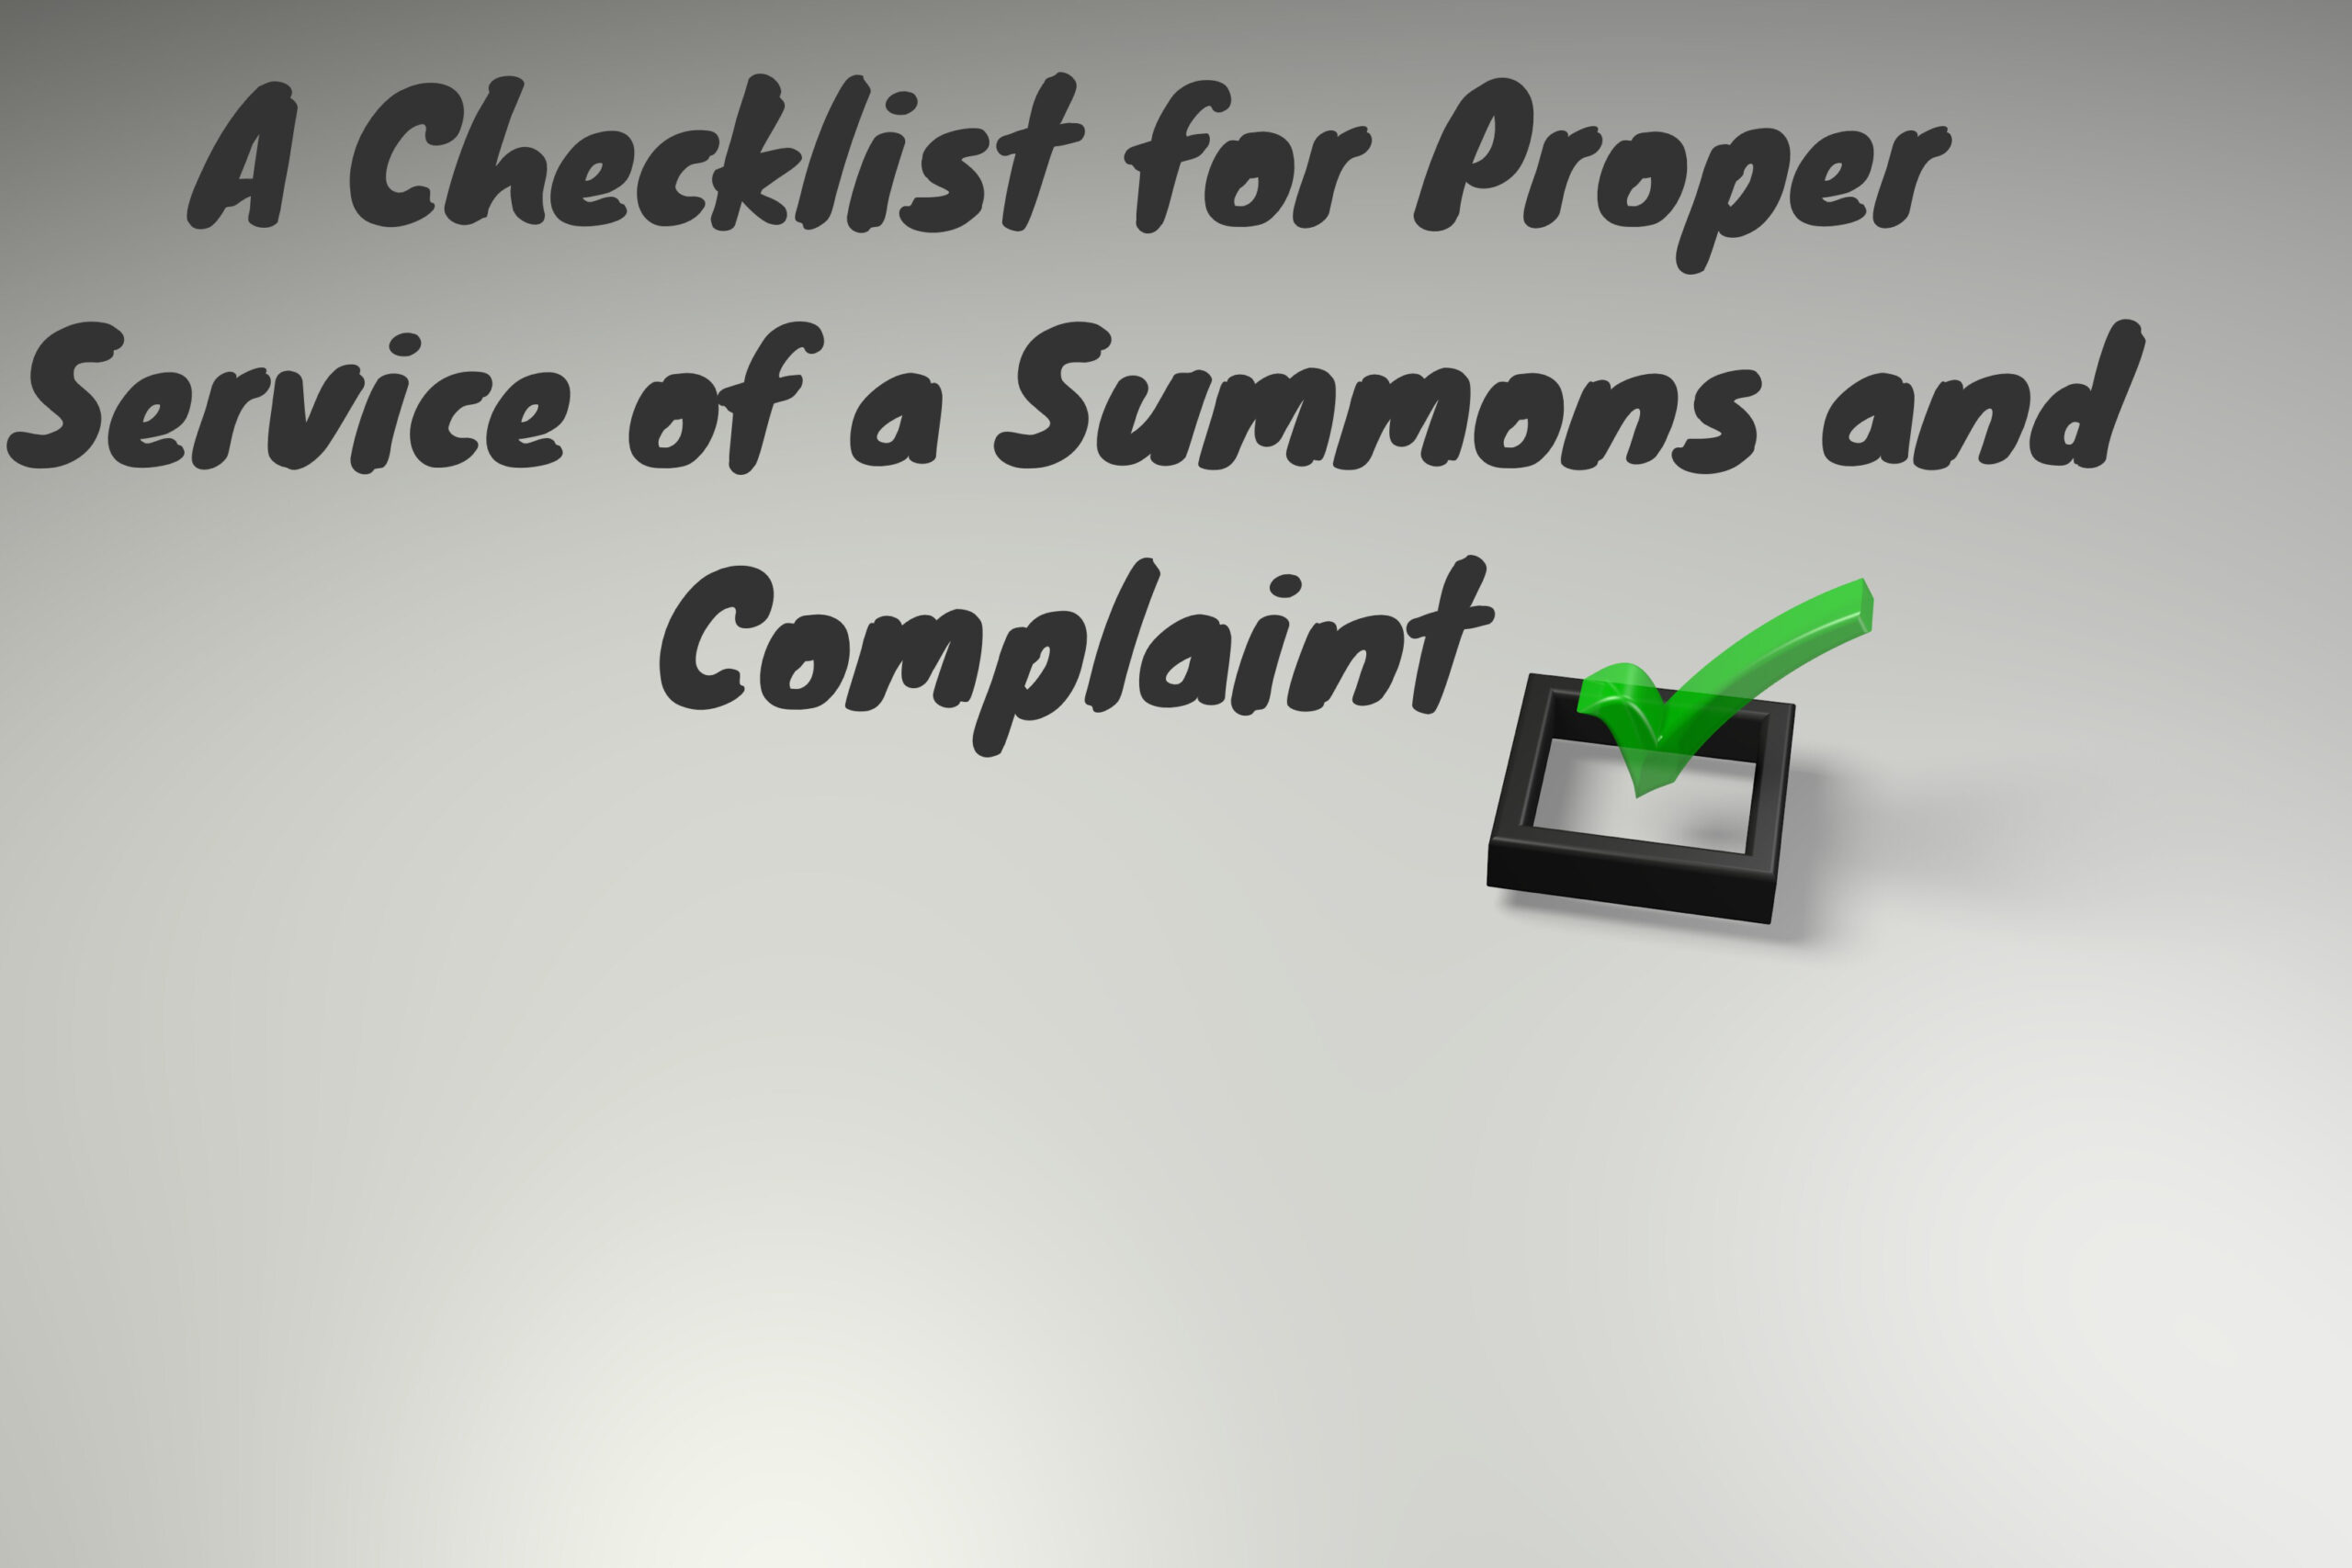 A checklist for proper service of a ny debt collection summons and a checklist for proper service of a ny summons and complaint altavistaventures Gallery